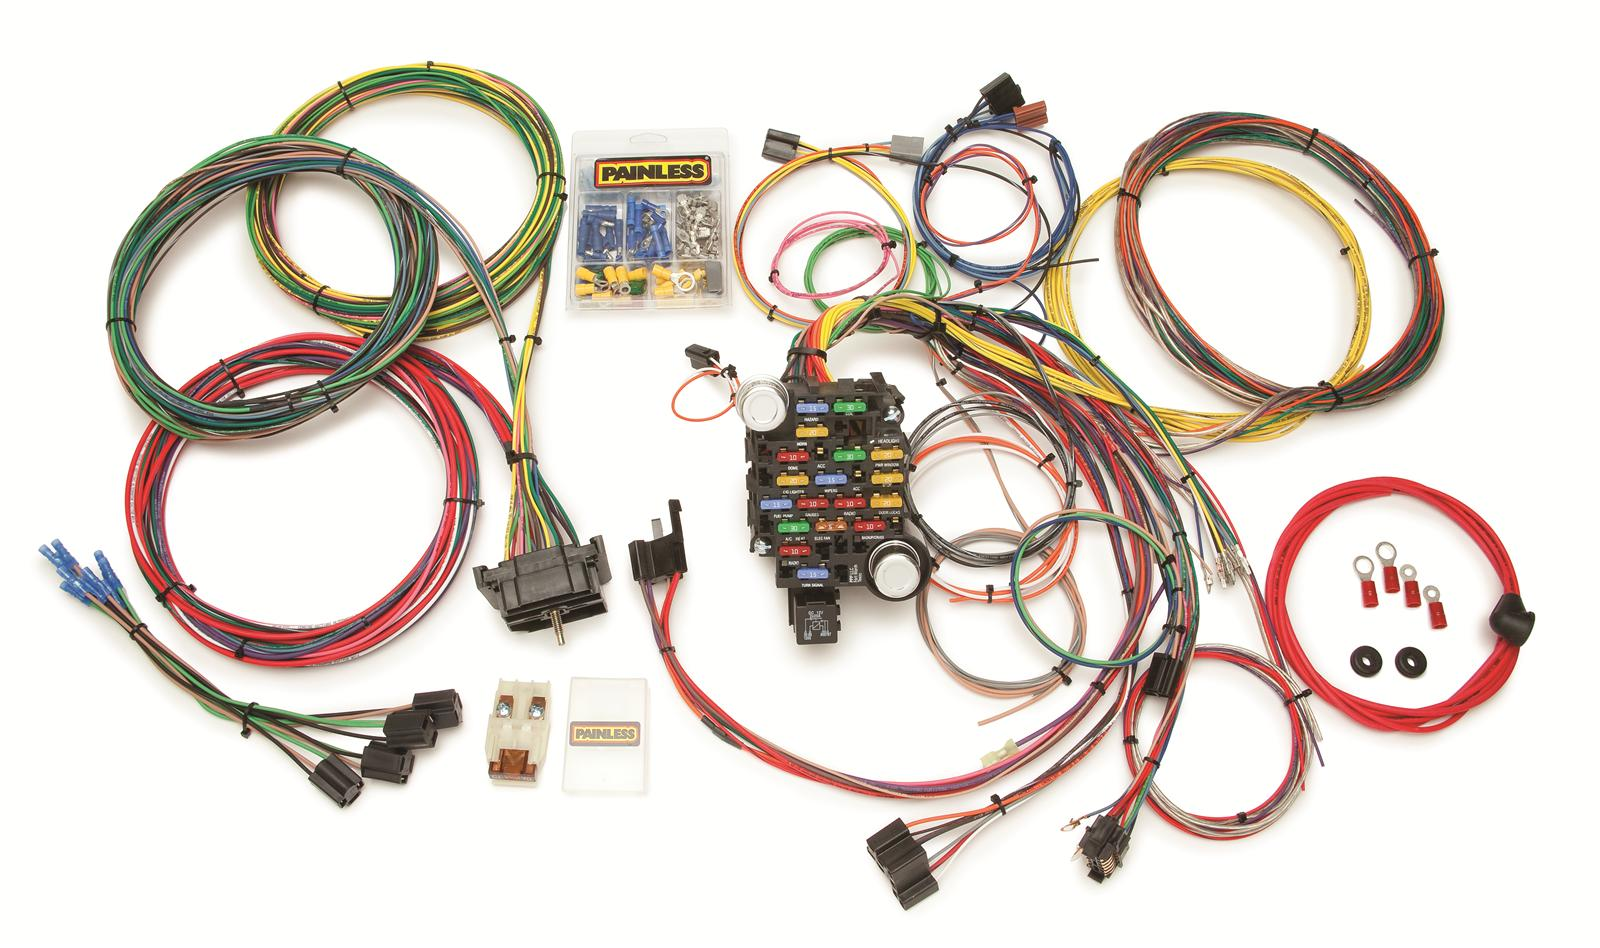 Pleasant 55 Chevy Wire Harness Basic Electronics Wiring Diagram Wiring Cloud Timewinrebemohammedshrineorg